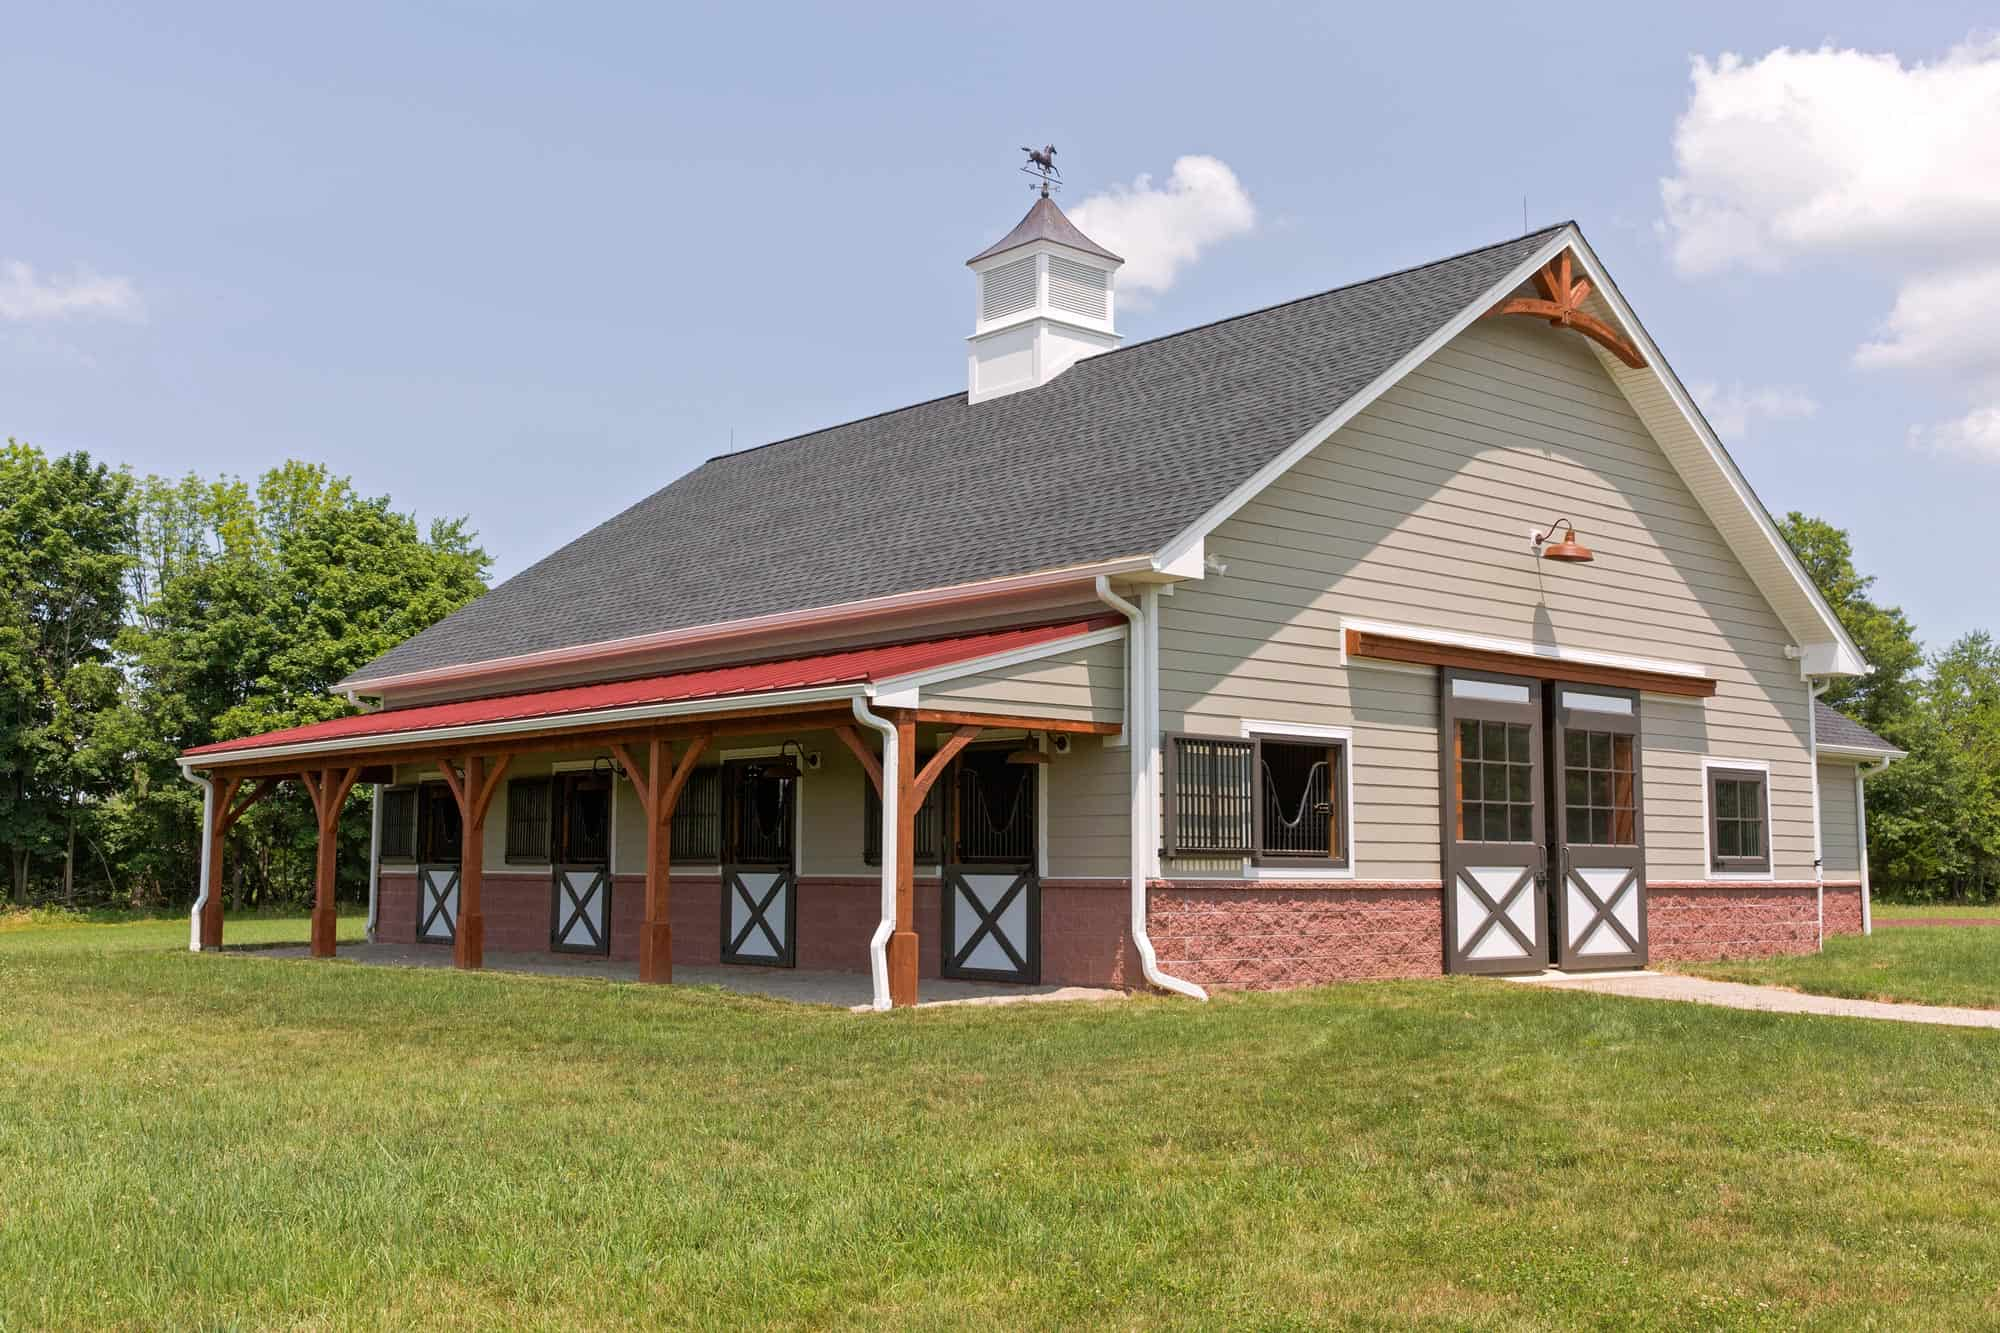 cupola red roof mass timber horse stalls